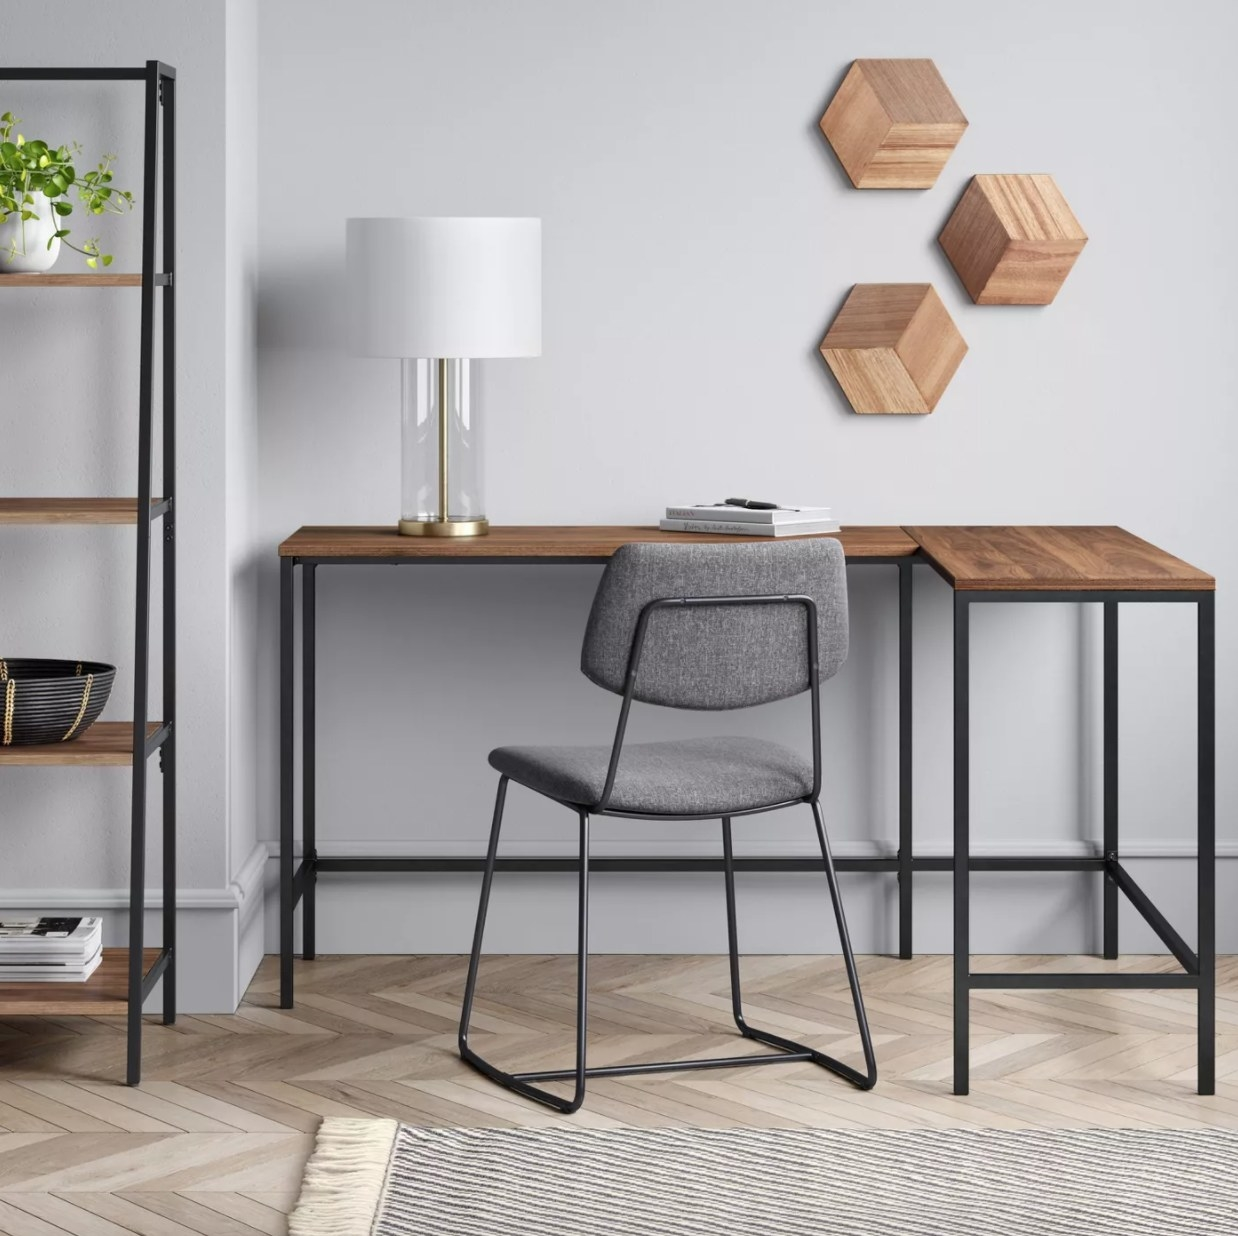 An L-shaped desk with metal frame and wood top